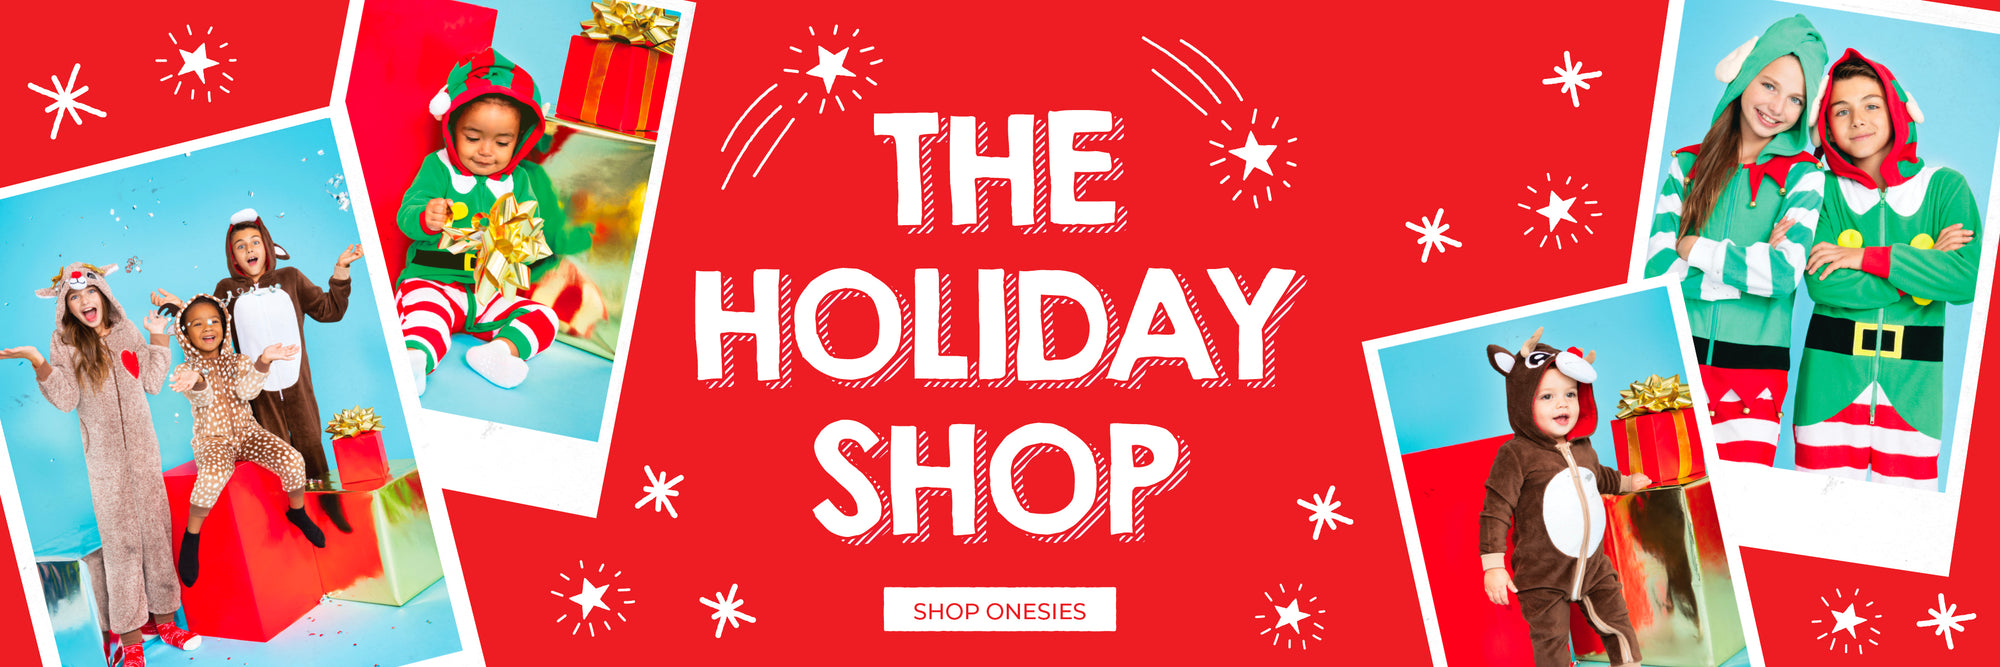 Urban Kids | The Holiday Shop - Shop Onesies